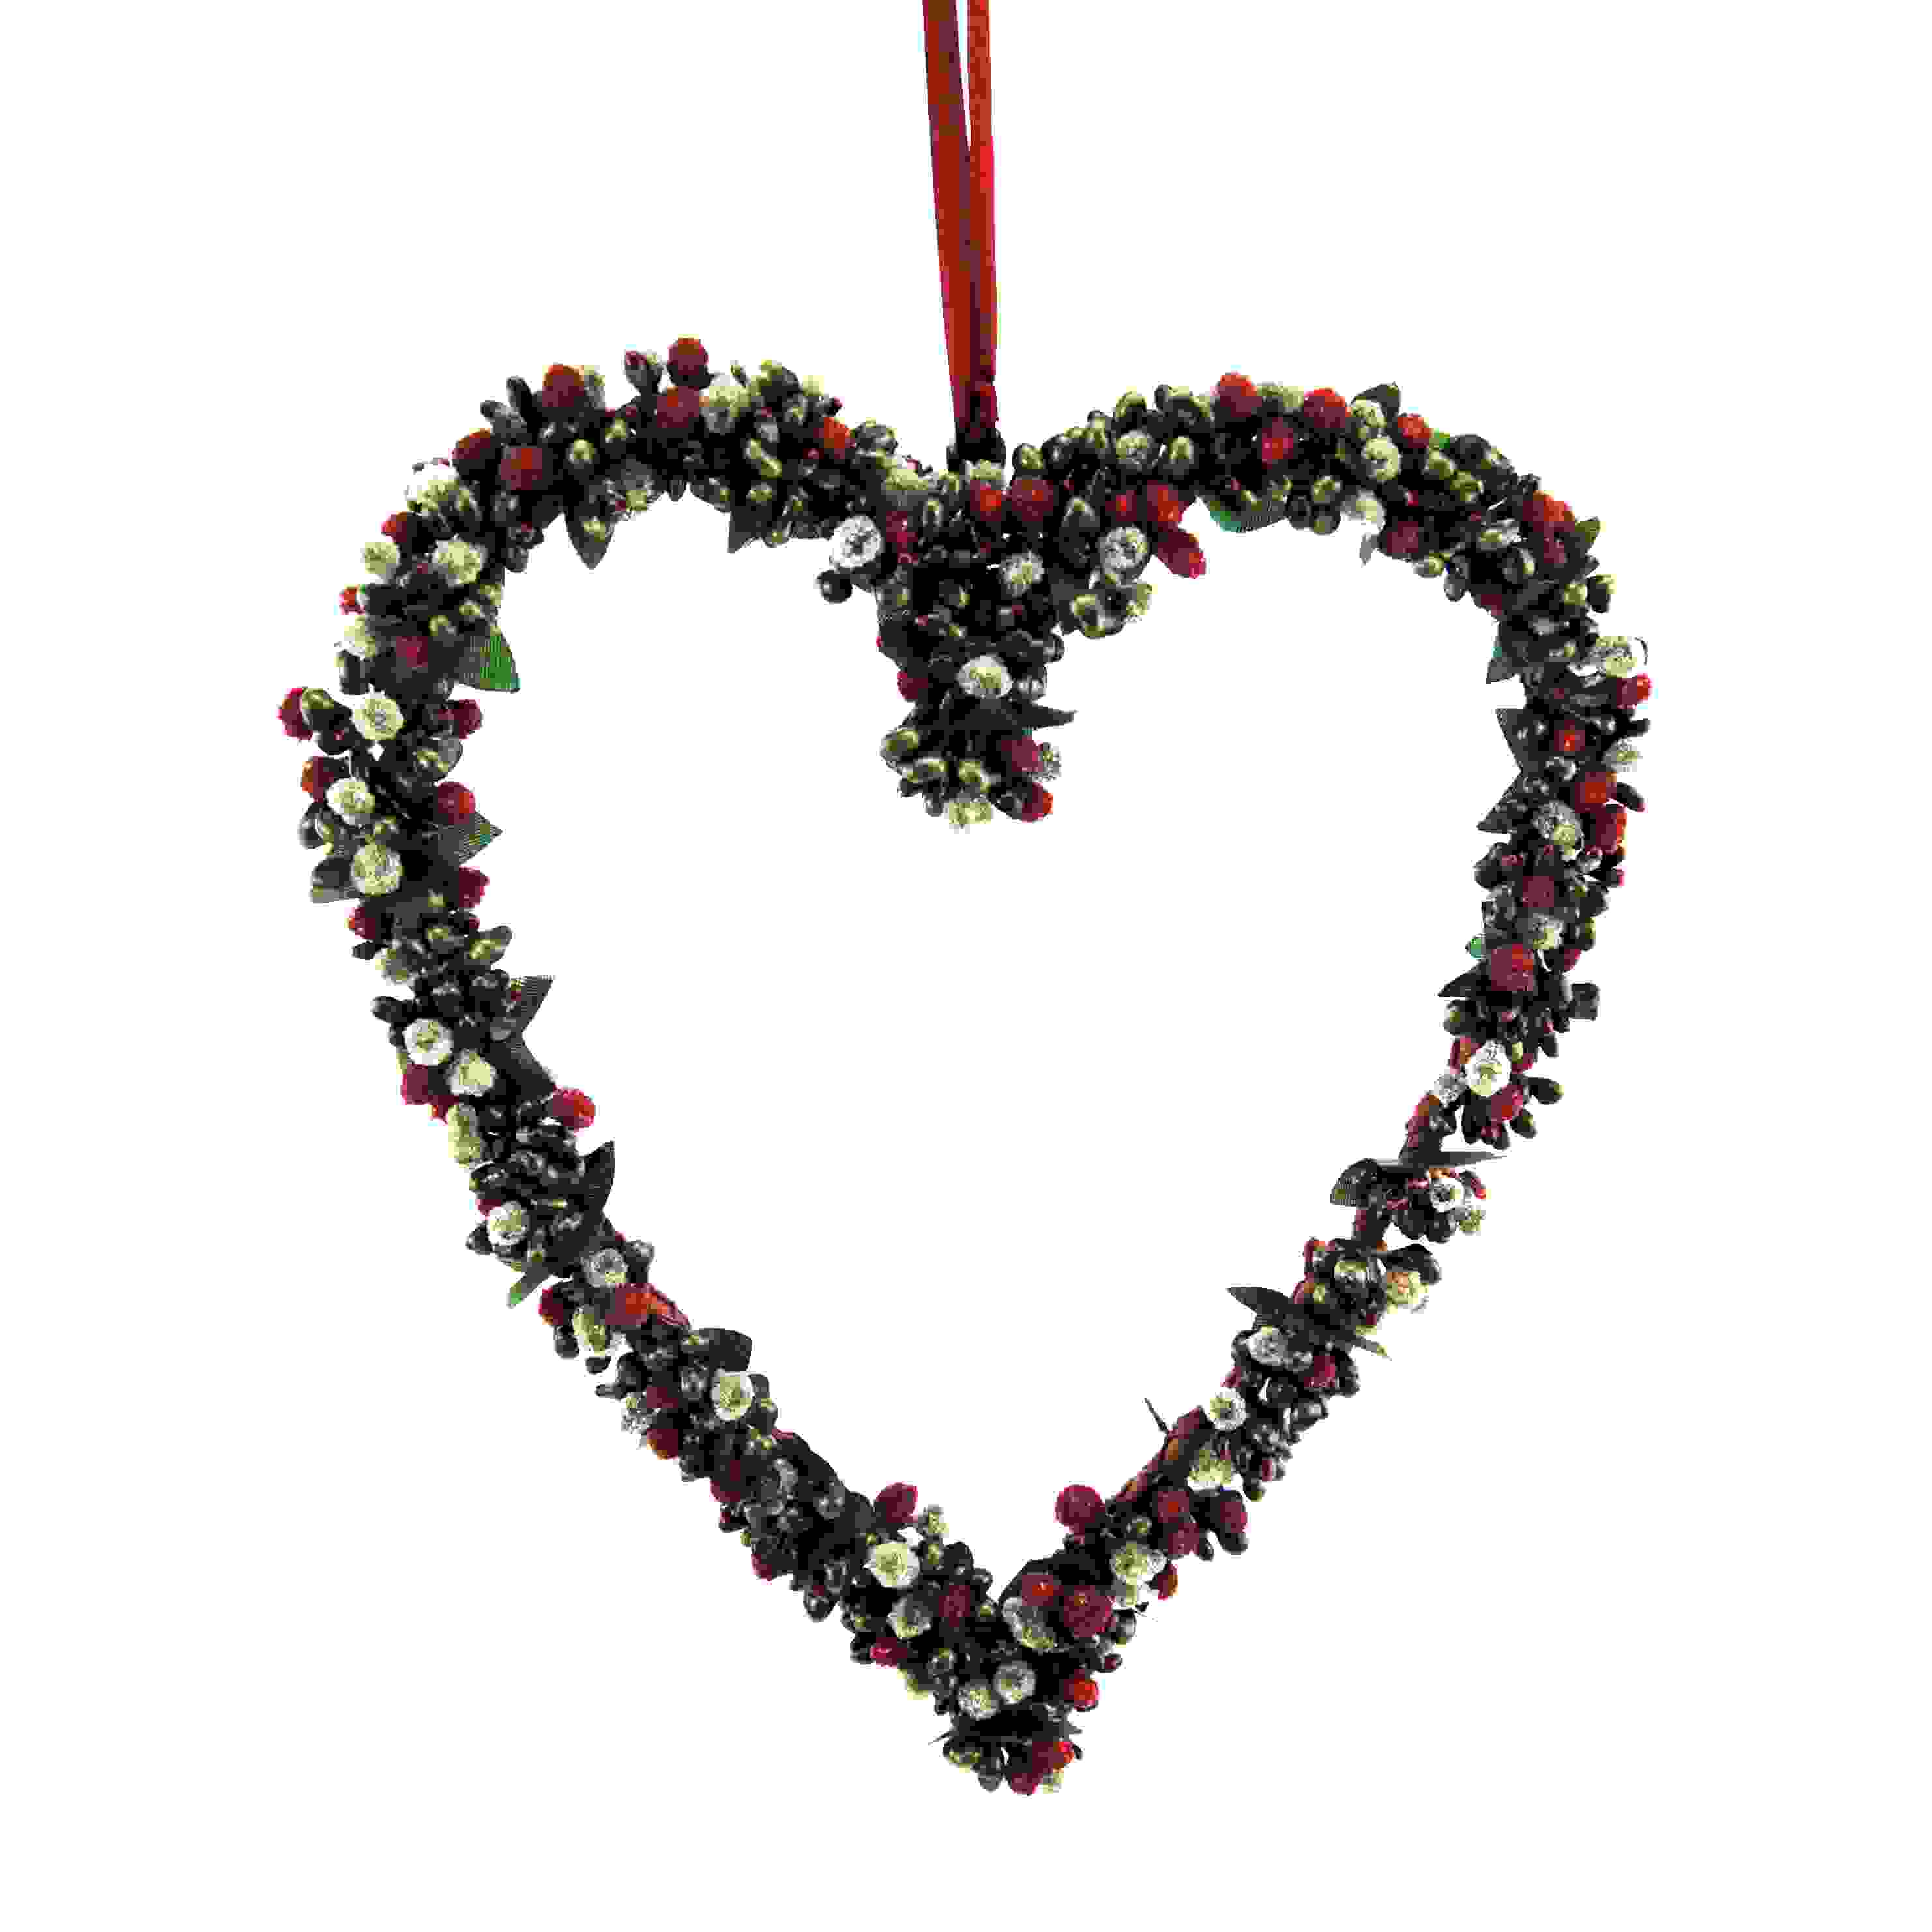 HANG HEART 26cm BERRYBUD GREEN/BURG.